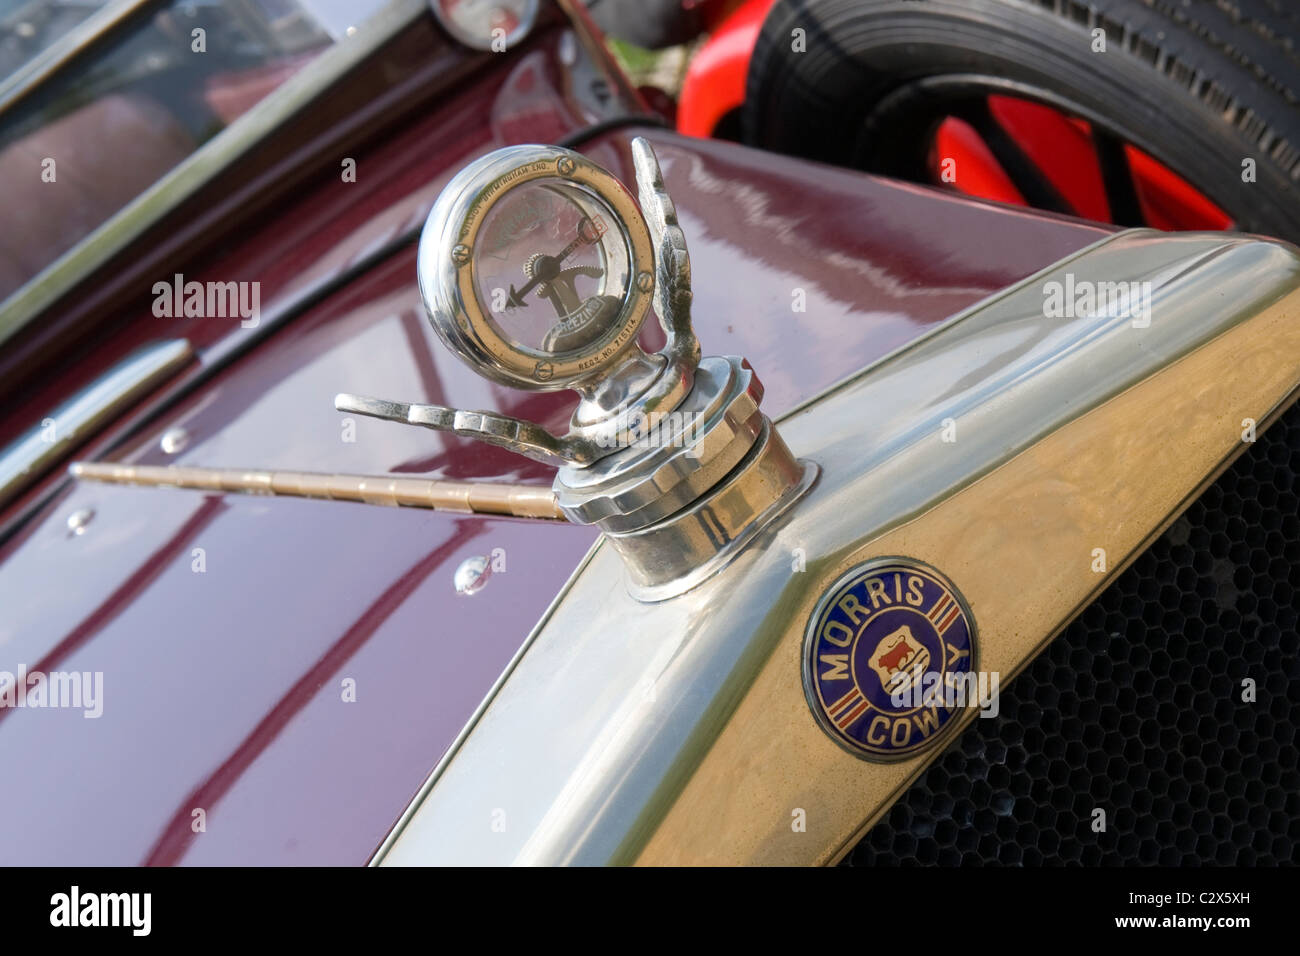 de Havilland Aircraft Heritage Museum Morris Cars Day , 1929 red 1.8l Morris Cowley drop head convertible detail - Stock Image